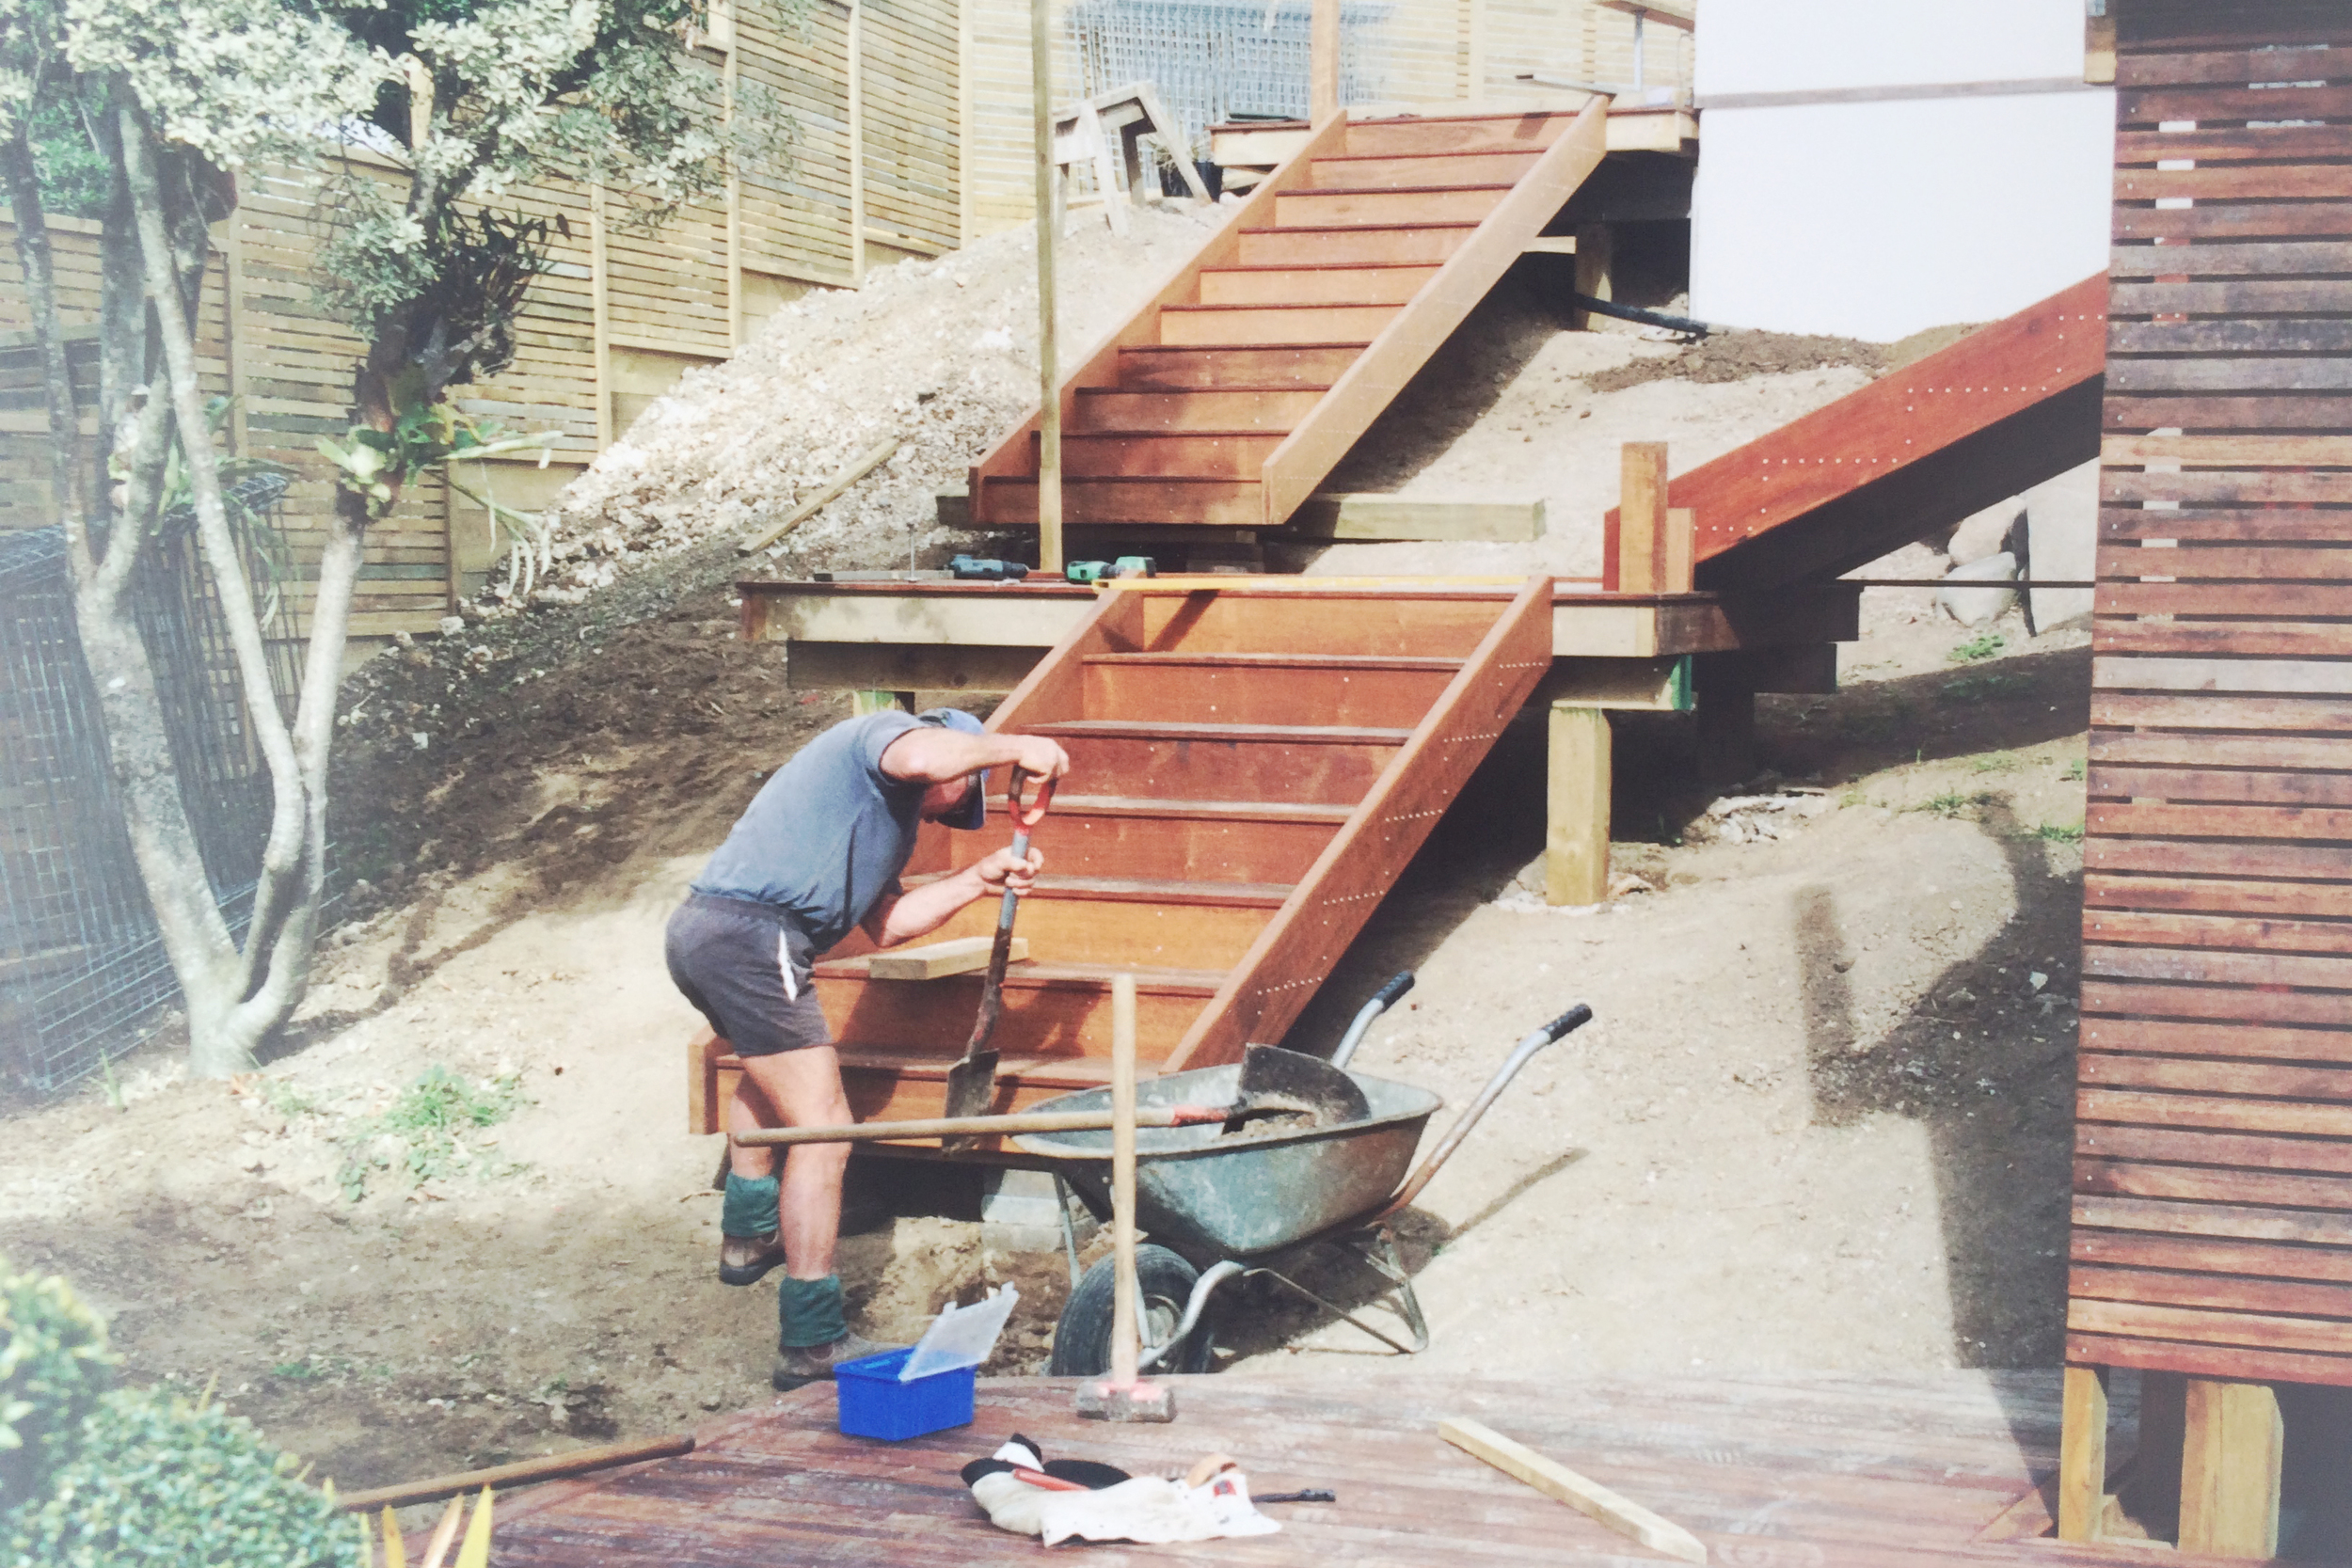 Stairs and platforms leading to pool area and main deck, Rod hard at work